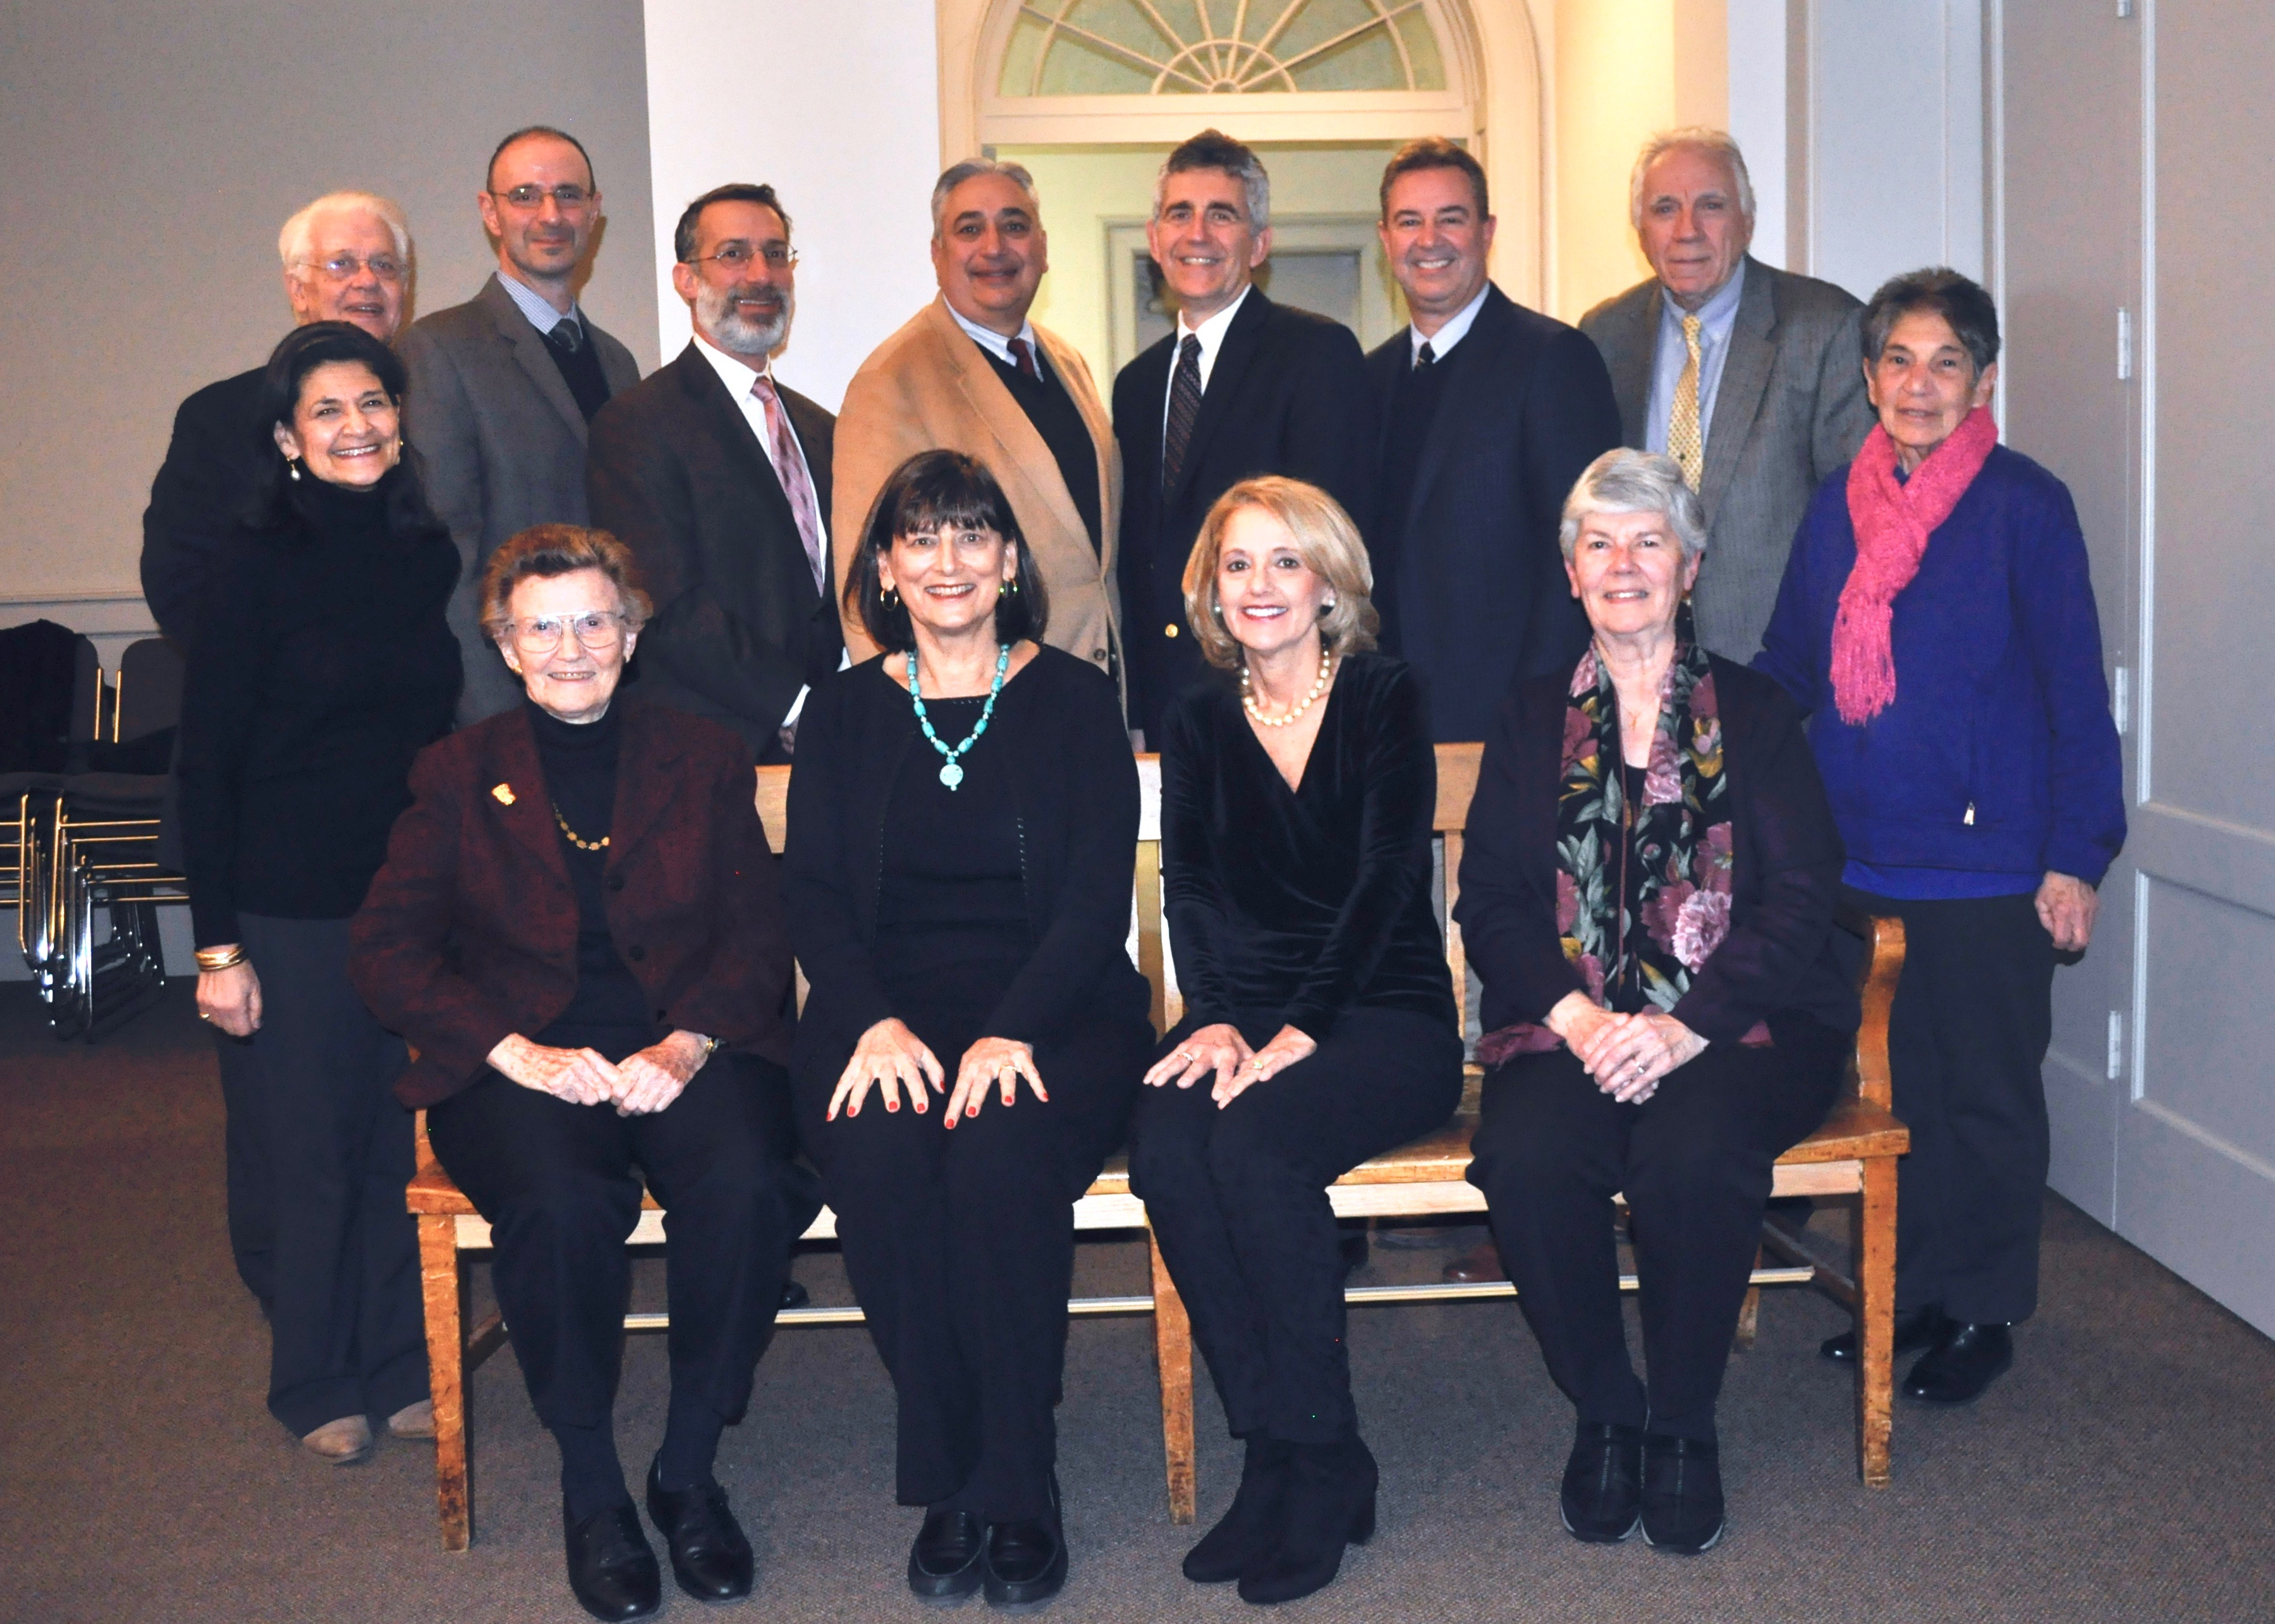 Dorothea's House Board of Trustees Italian-American cultural institution